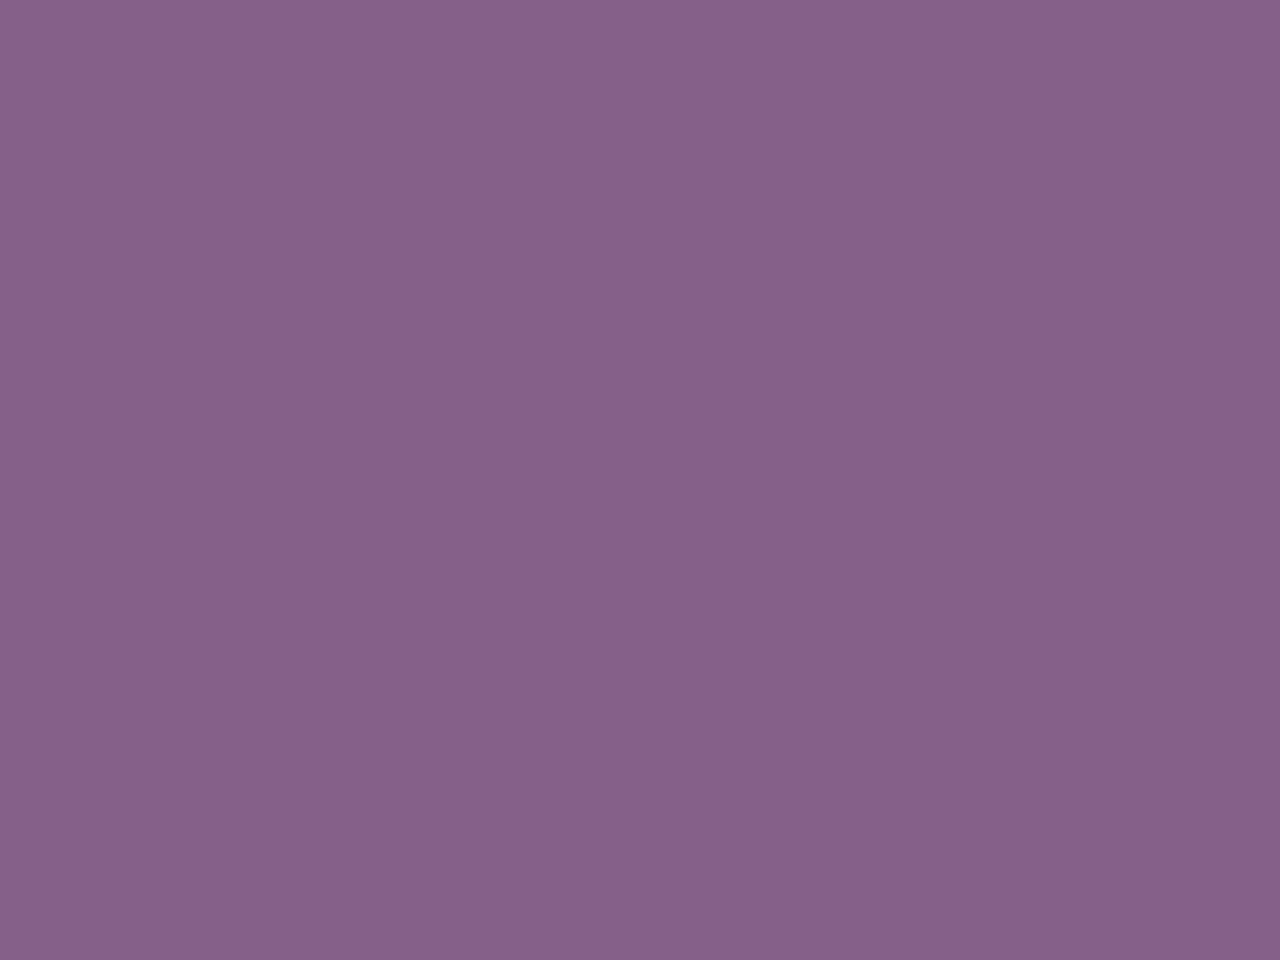 1280x960 Chinese Violet Solid Color Background